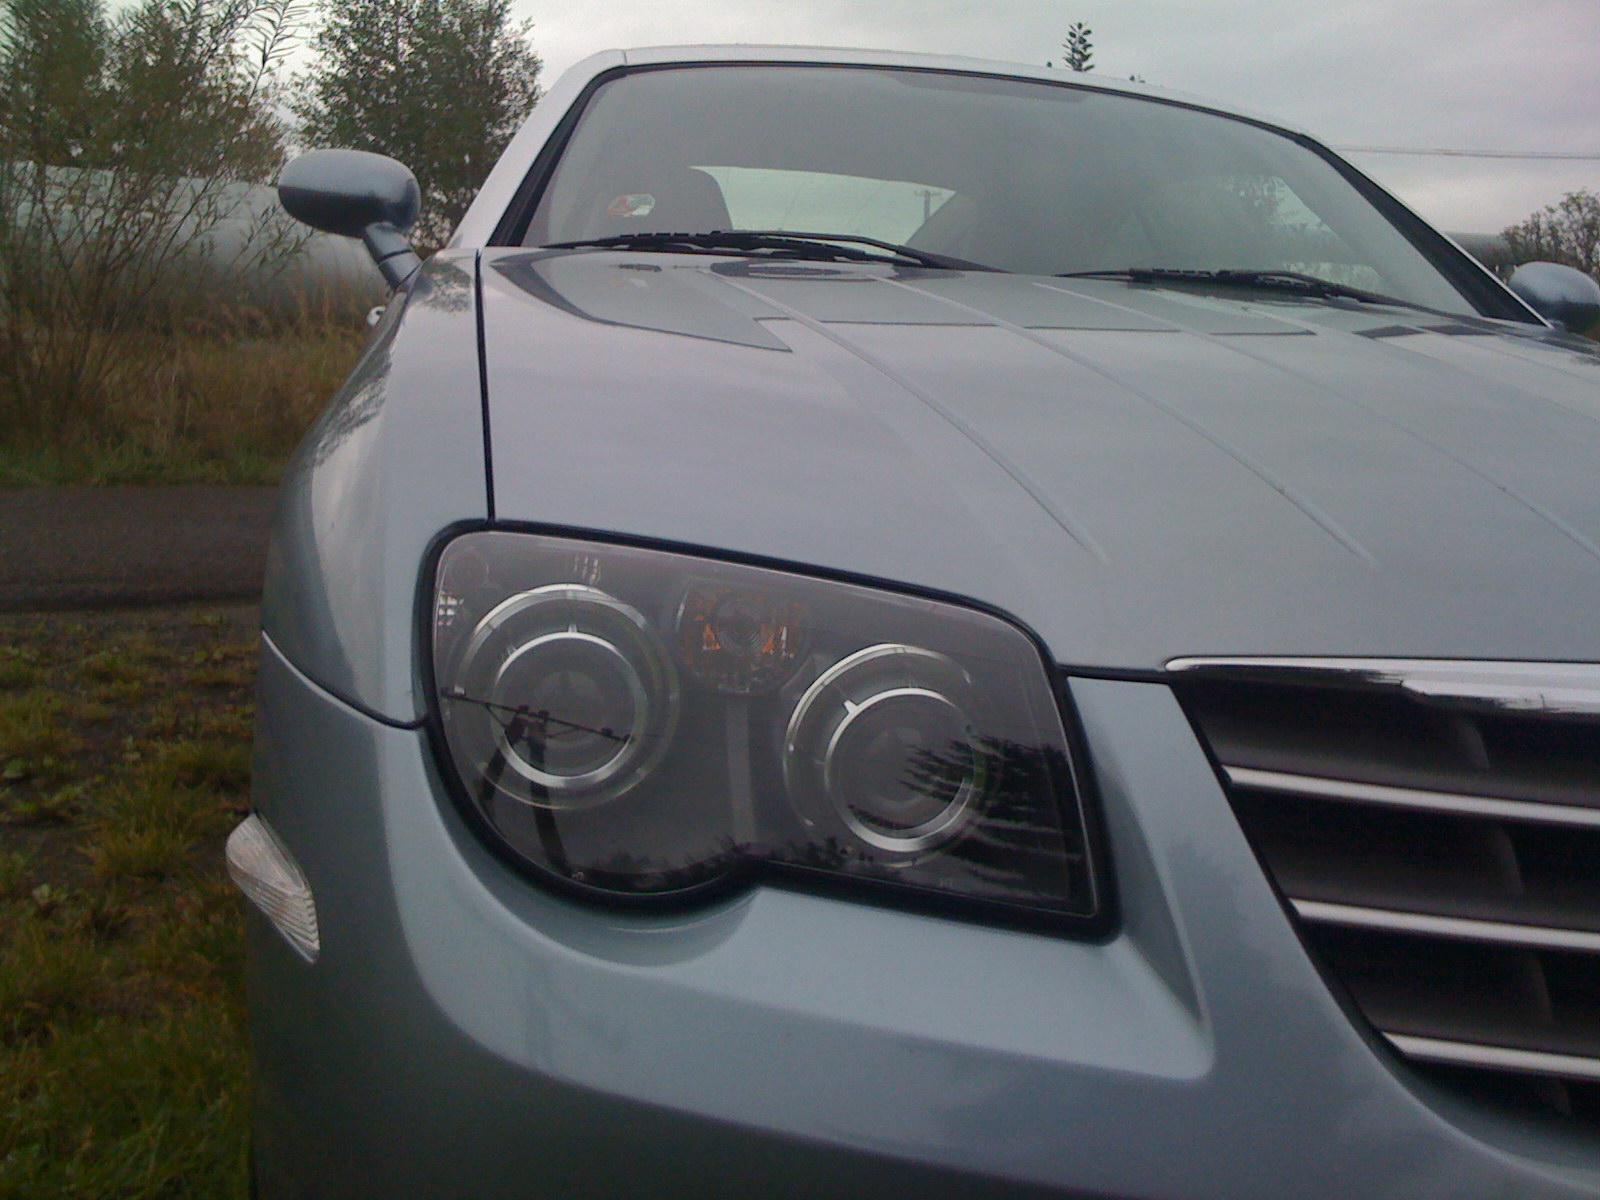 2006 chrysler crossfire with Owner Car Photo on 388309 Alarm Siren Battery Placement as well Watch besides Watch in addition Tapety na pulpit chrysler crossfire t607 furthermore 2002 Chrysler Sebring Pictures C1562.